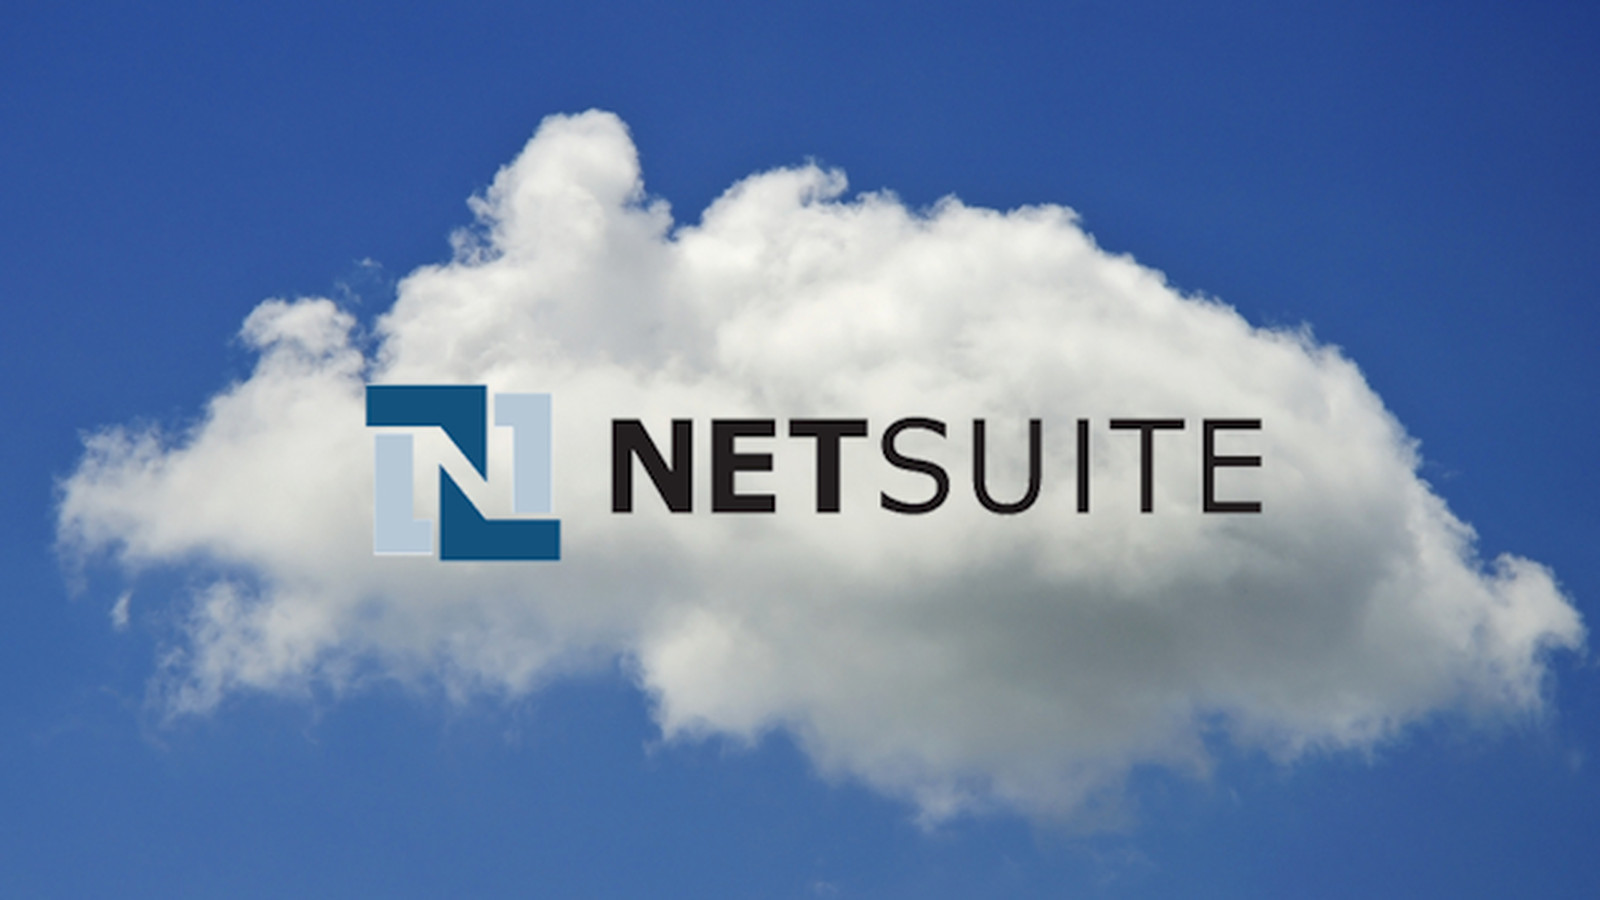 netsuite and microsoft team up in the cloud